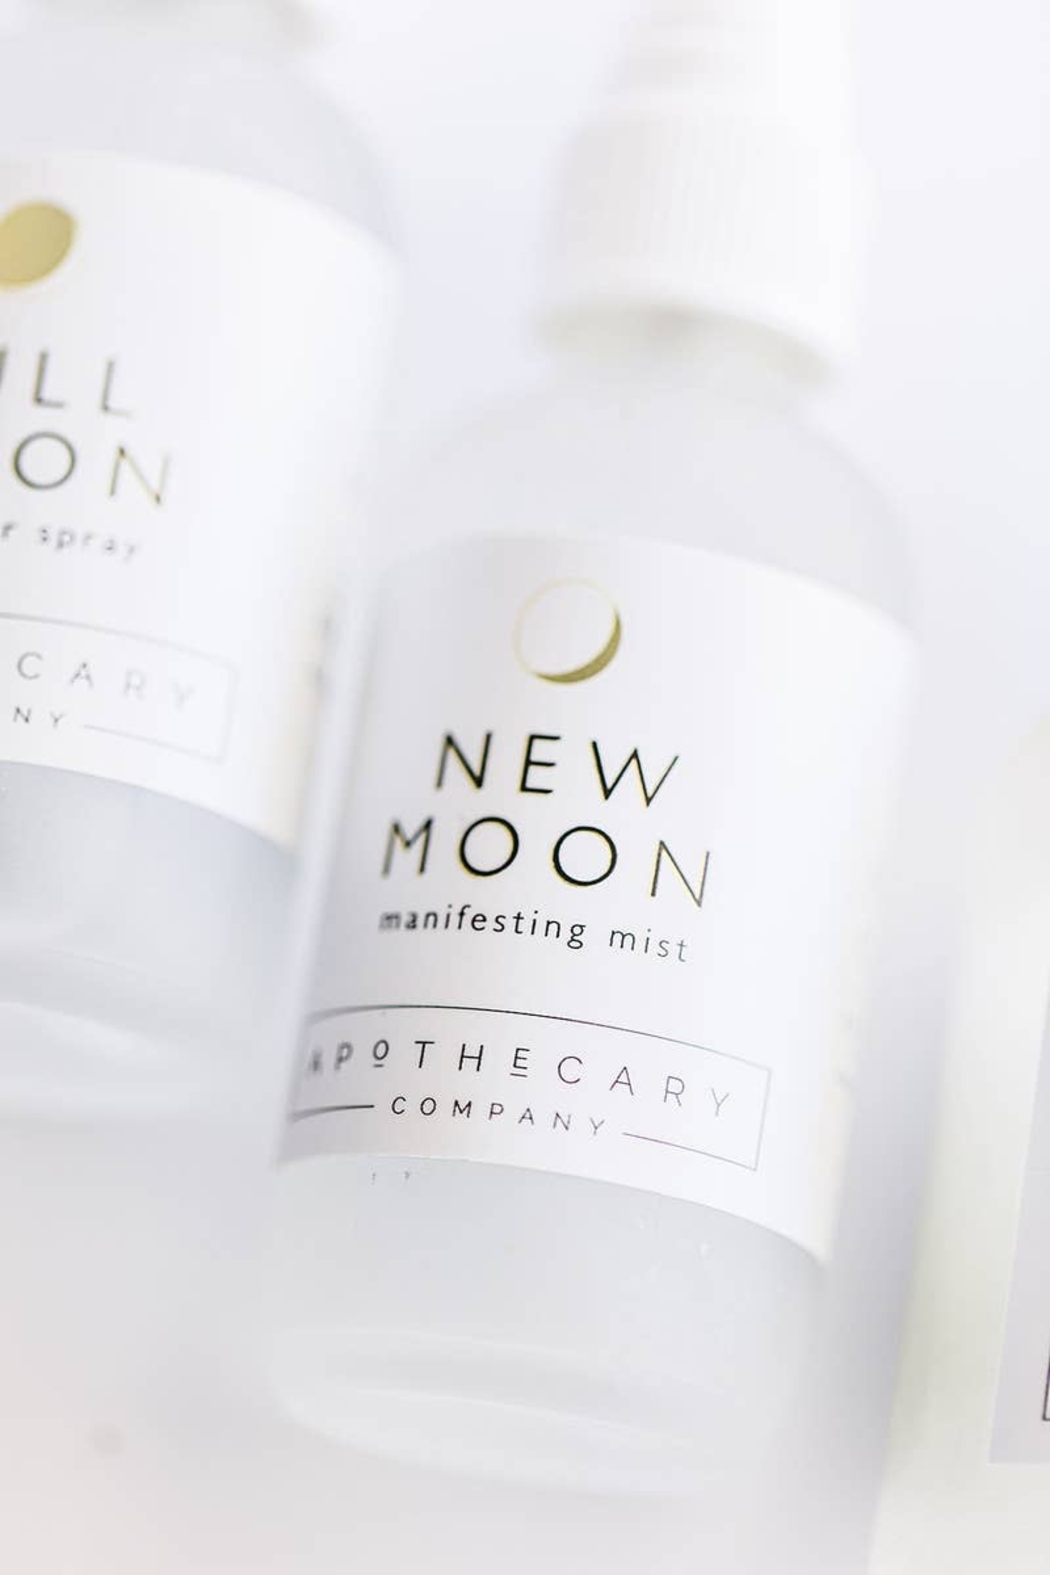 Apothecary Co New Moon Manifesting Mist - Main Image